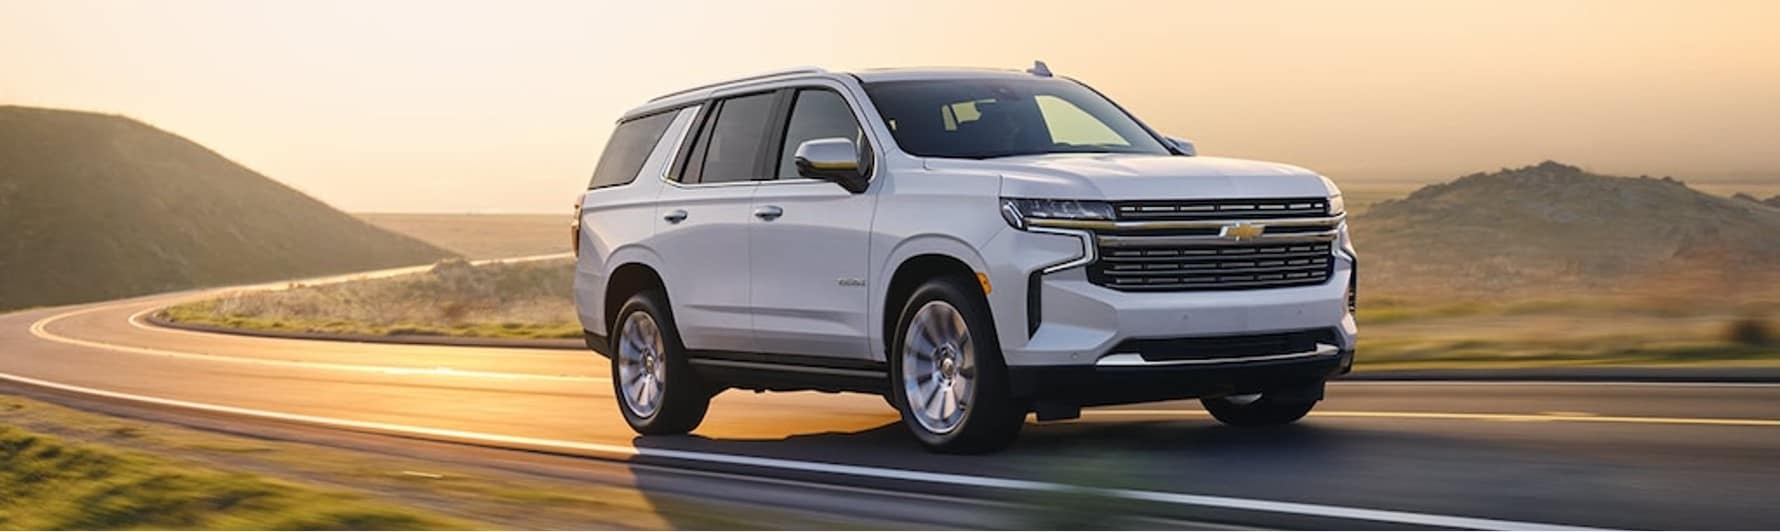 2021 Chevy Tahoe For Sale in Buena Park